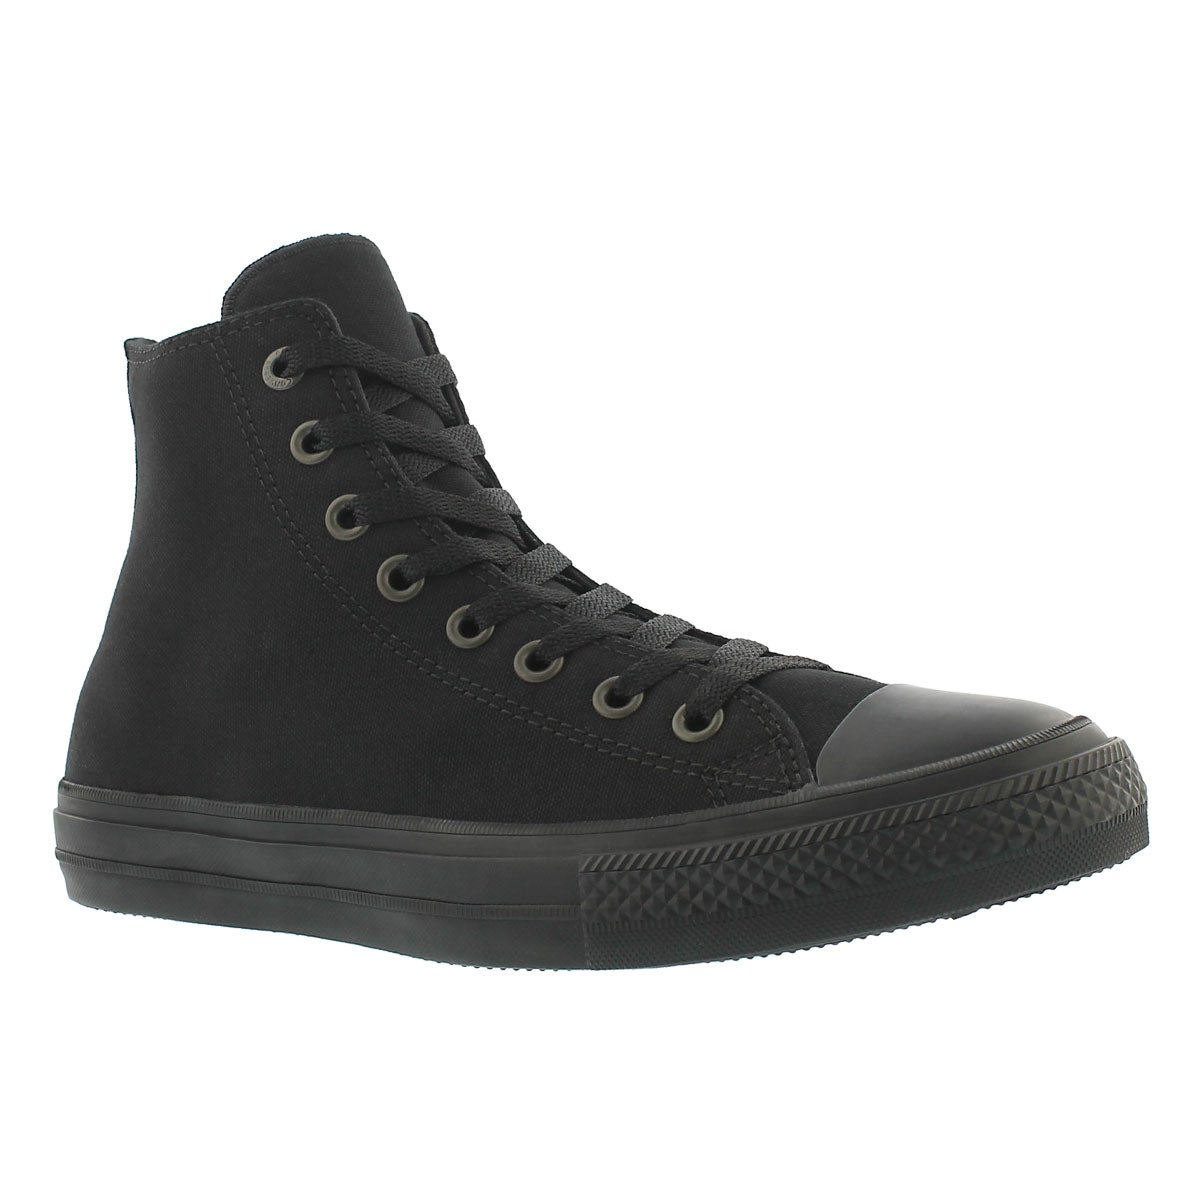 Men's CHUCK II VIZ FLOW black mono hi tops